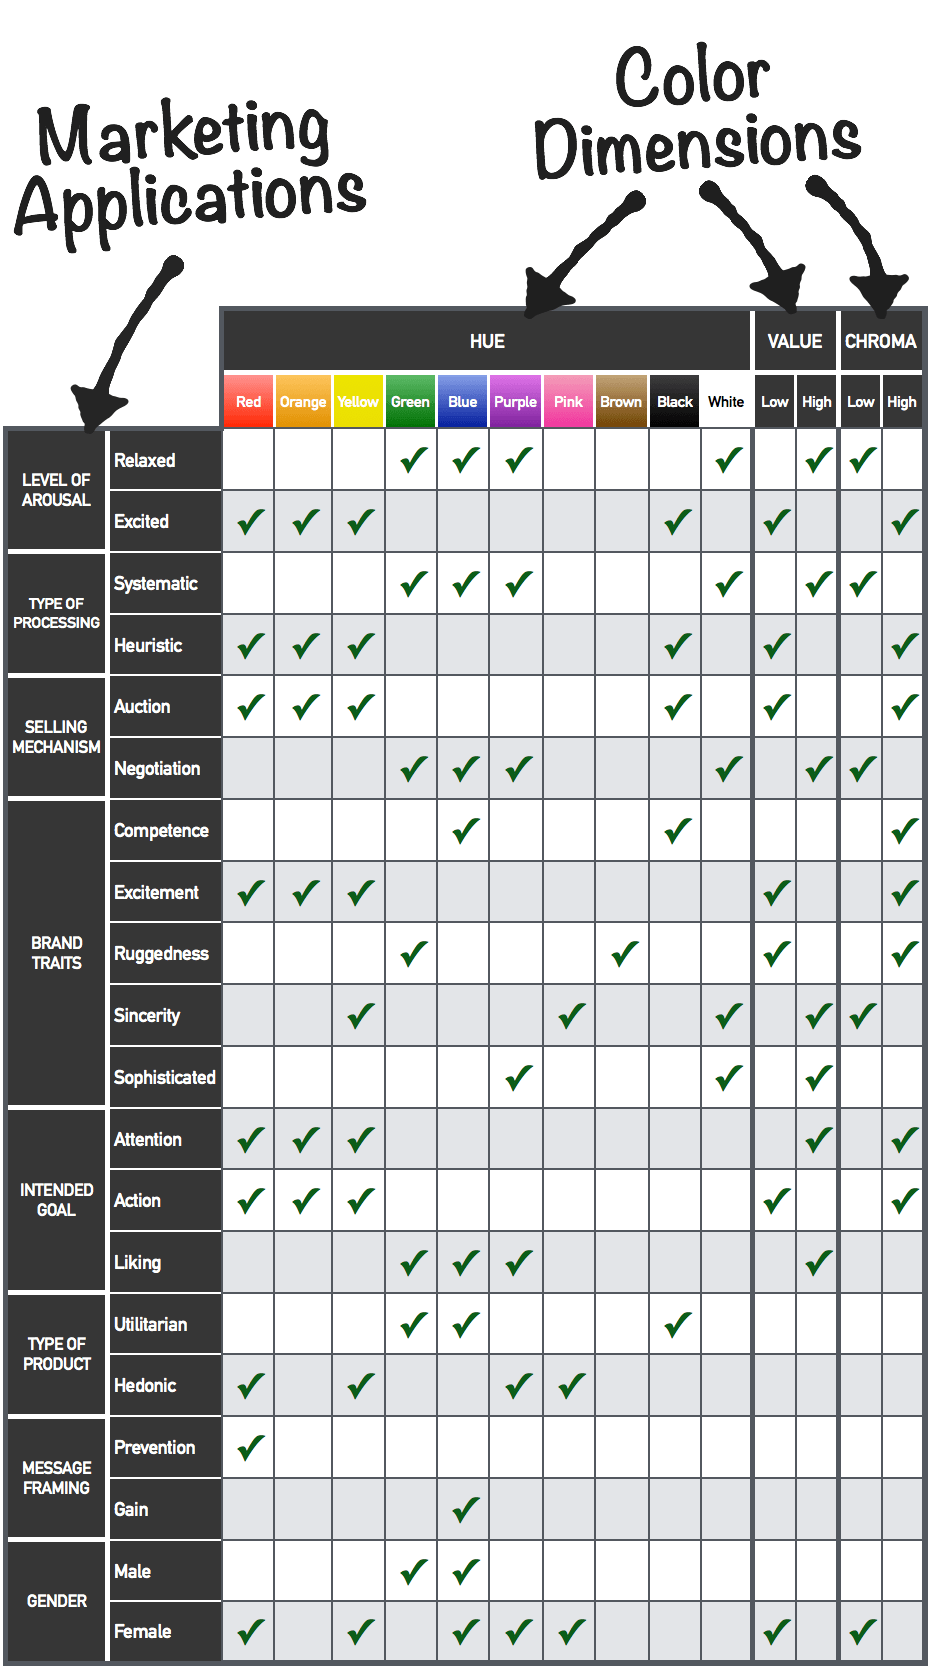 Full Color Table of Marketing Applications